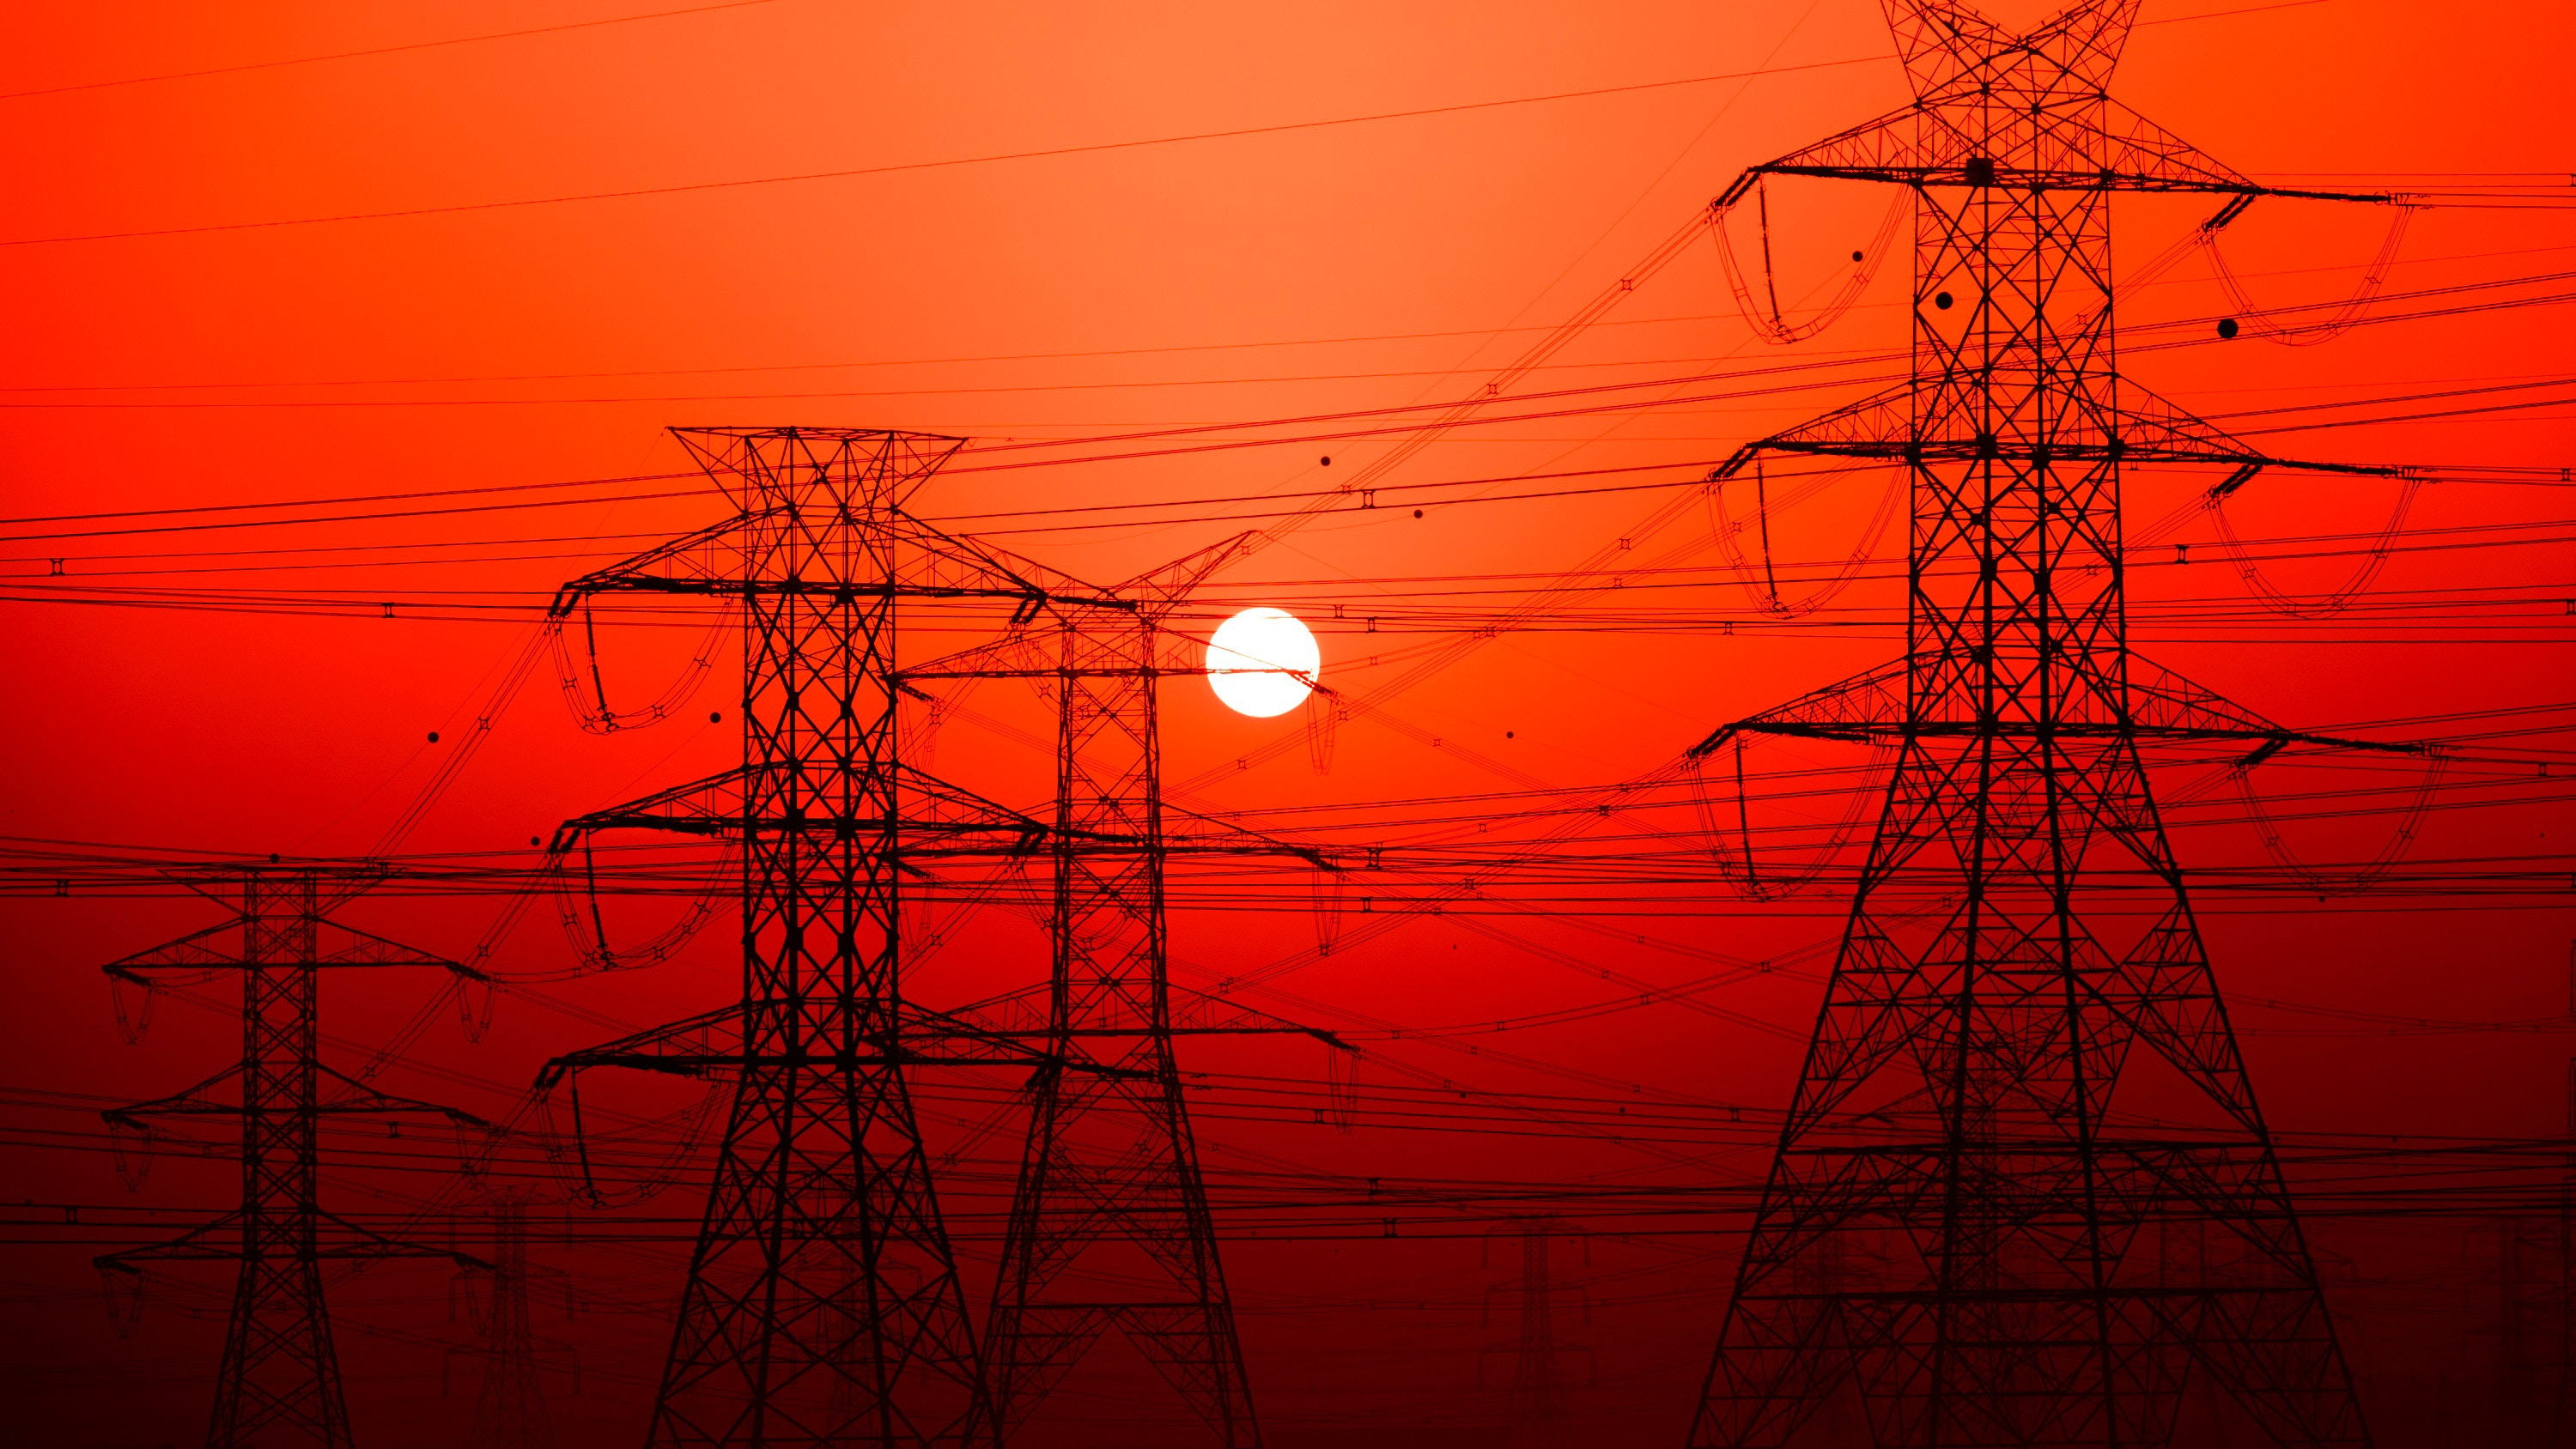 Electricity prices are a sensitive subject – but we still need to talk about them